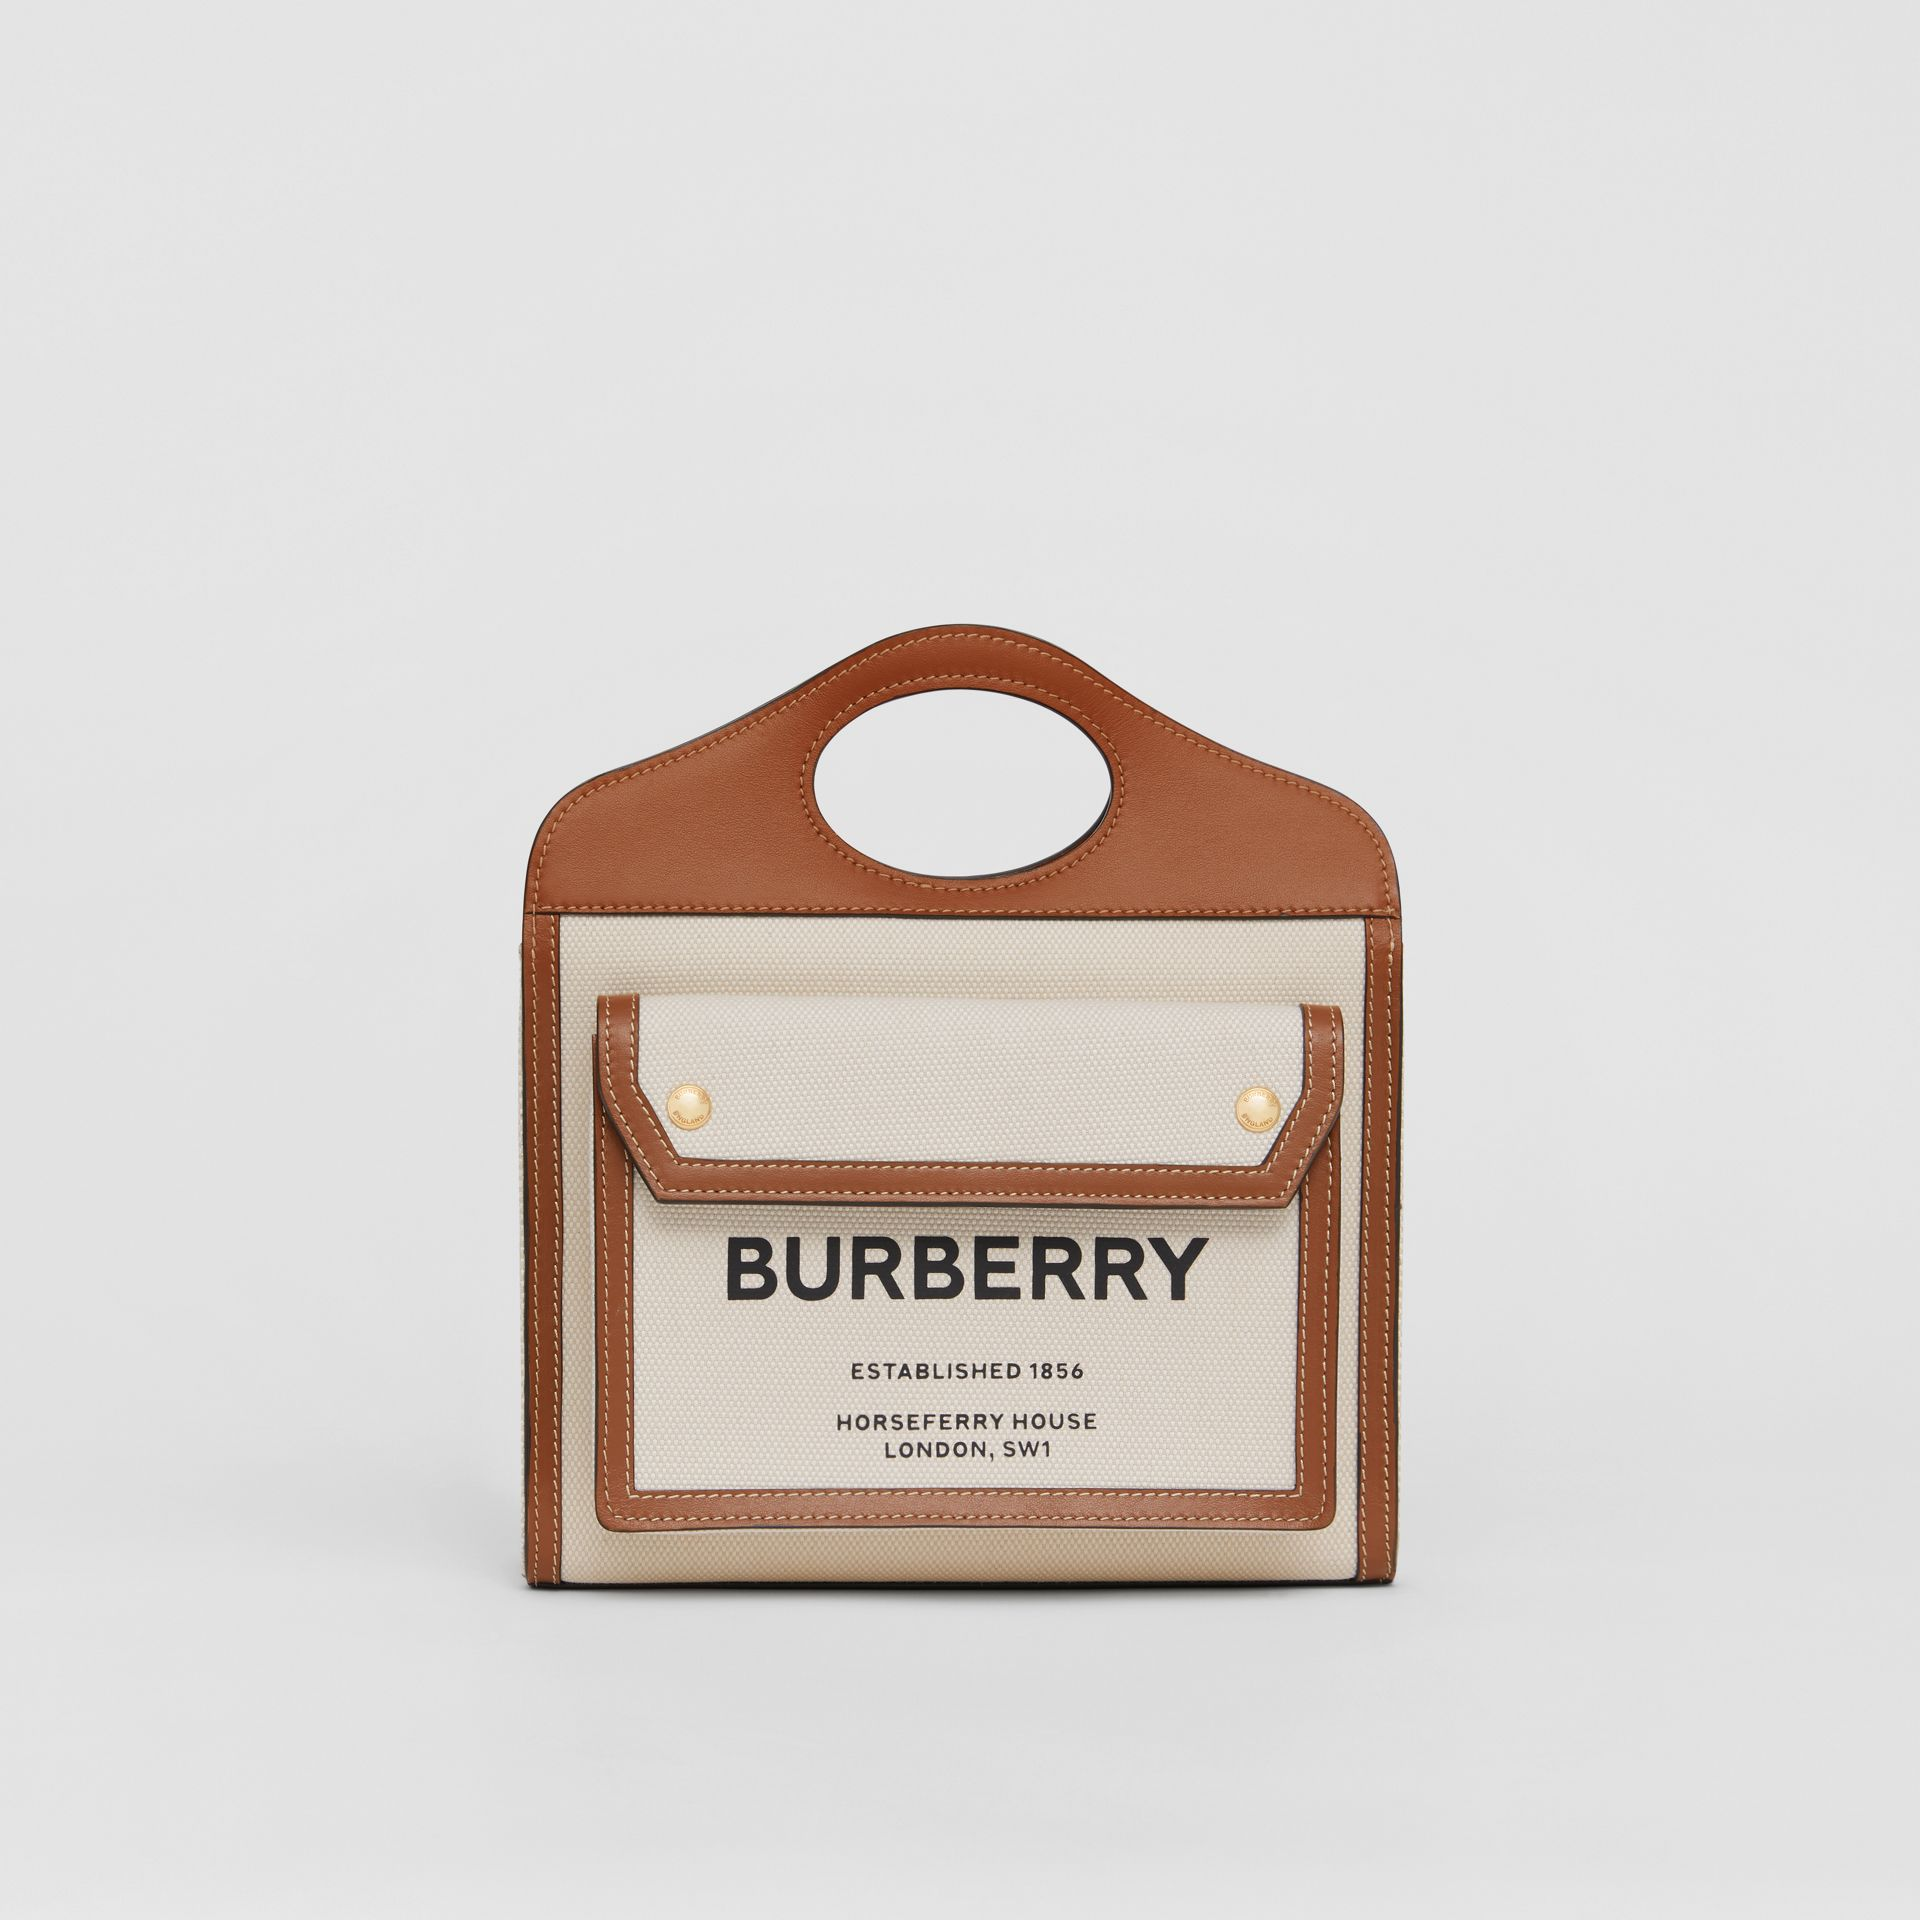 Borsa Pocket mini bicolore in tela e pelle (Naturale/marrone Malto) - Donna | Burberry - immagine della galleria 0